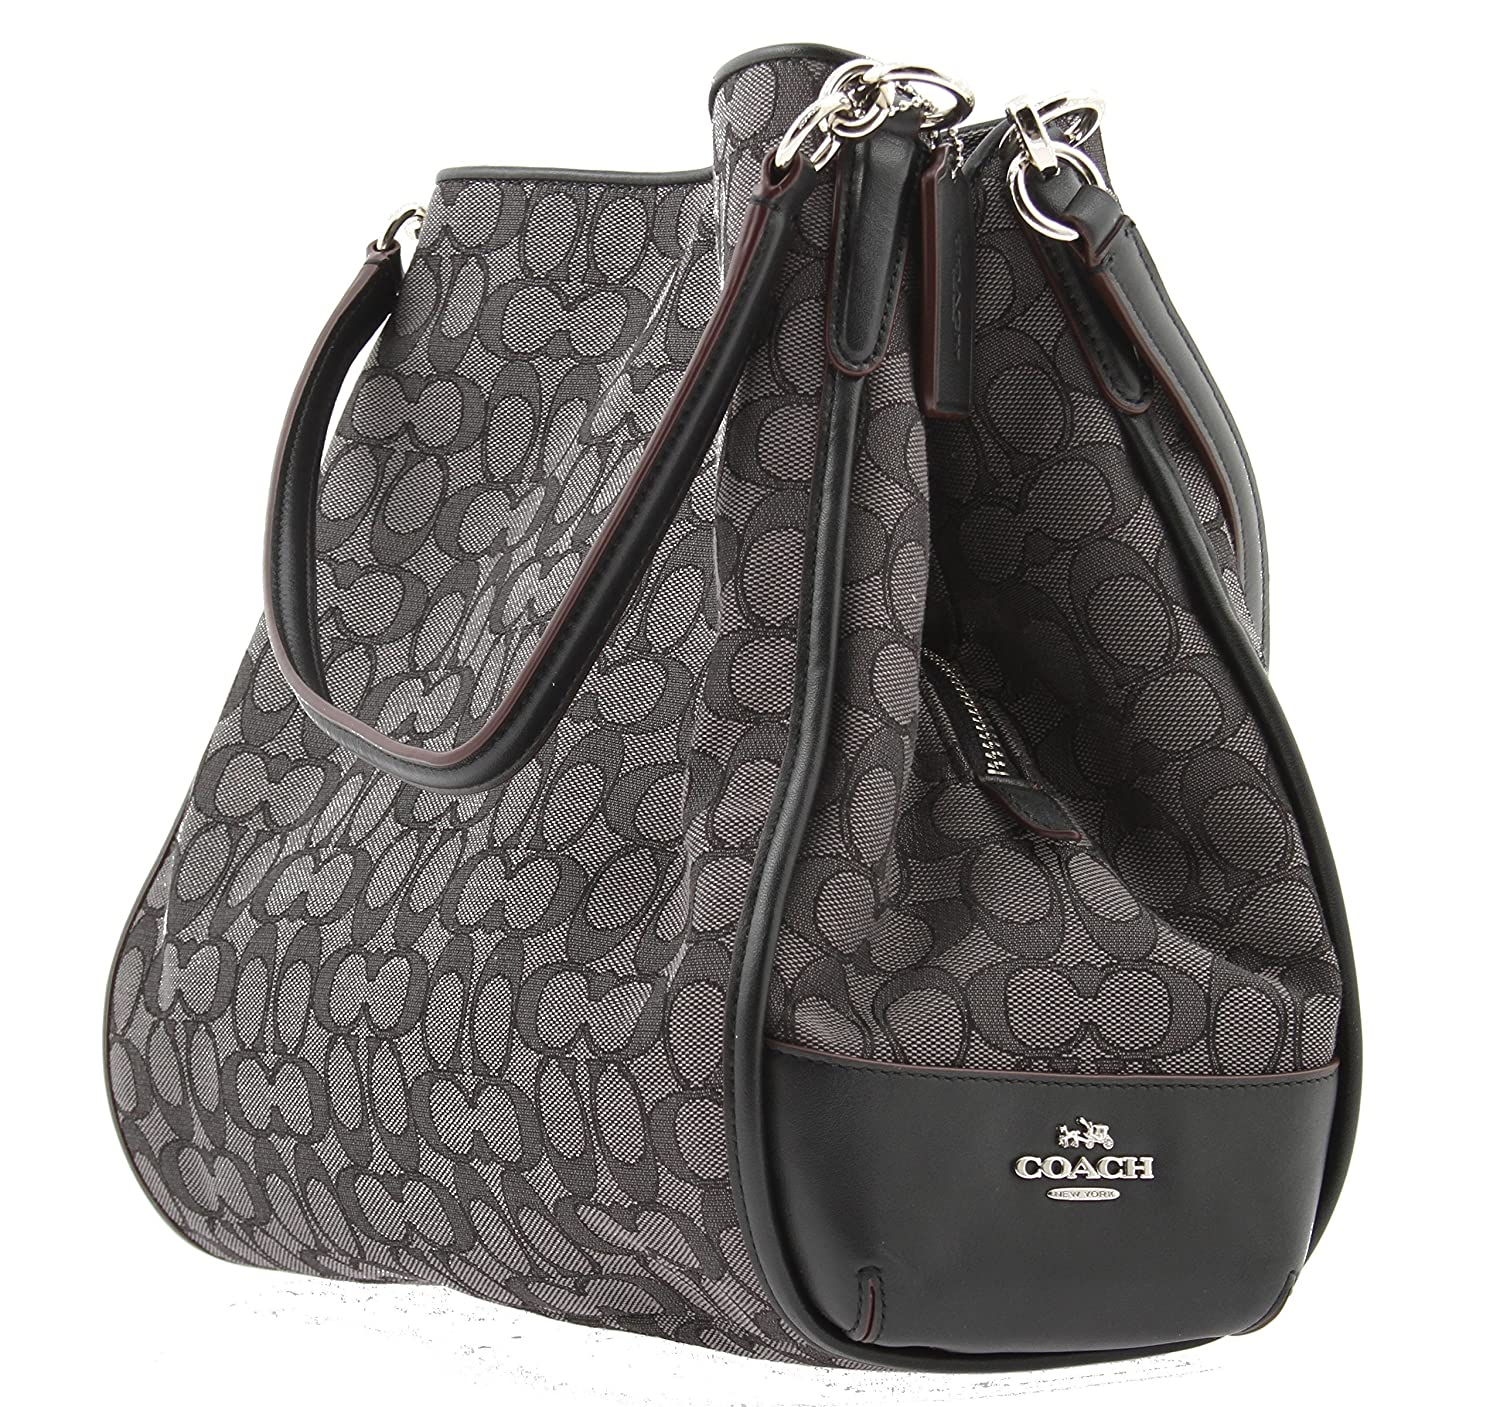 Amazon.com  Coach Signature Phoebe Tote Carryall Handbag Shoulder Bag Smoke    Black F36424  Shoes 7e0938855e504